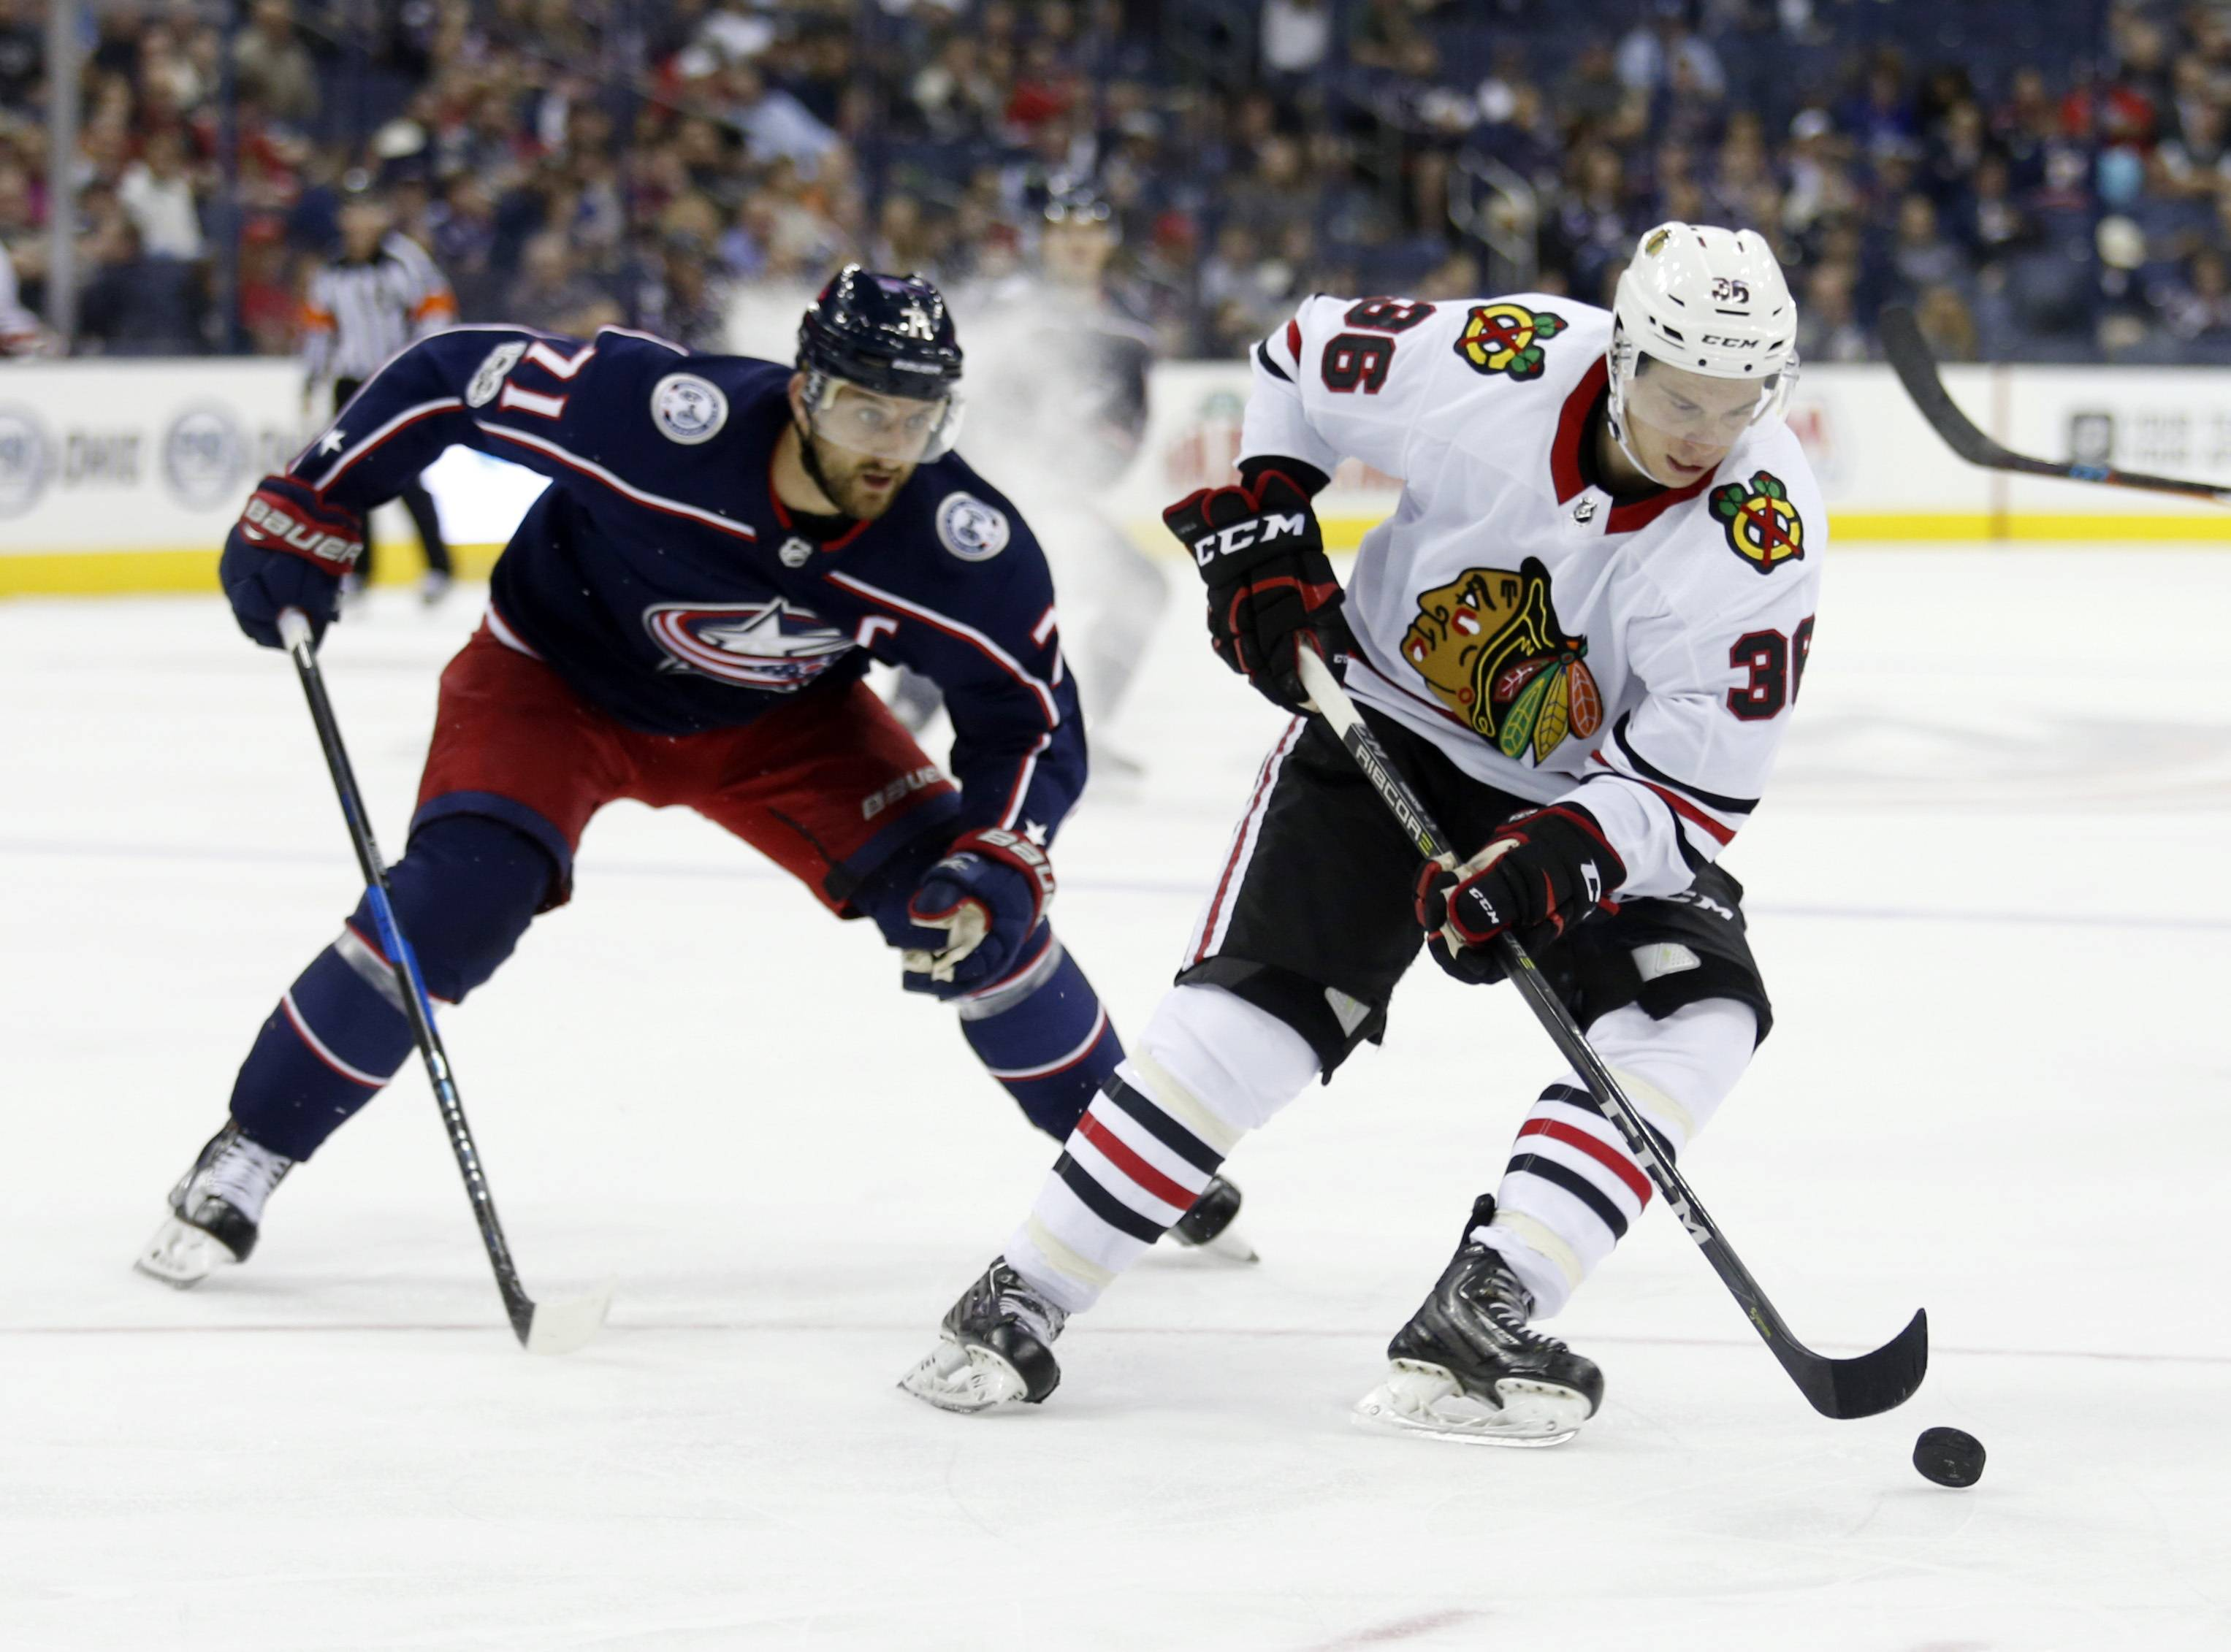 Chicago Blackhawks forward Matthew Highmore, right, controls the puck against Columbus Blue Jackets forward Nick Foligno during a 2017 preseason game. Highmore scored a rookie record 21 goals for the Rockford IceHogs and earned a call-up to the Chicago Blackhawks on Monday. Now we'll see if he can fill up the net in the NHL as well as he did in the AHL.